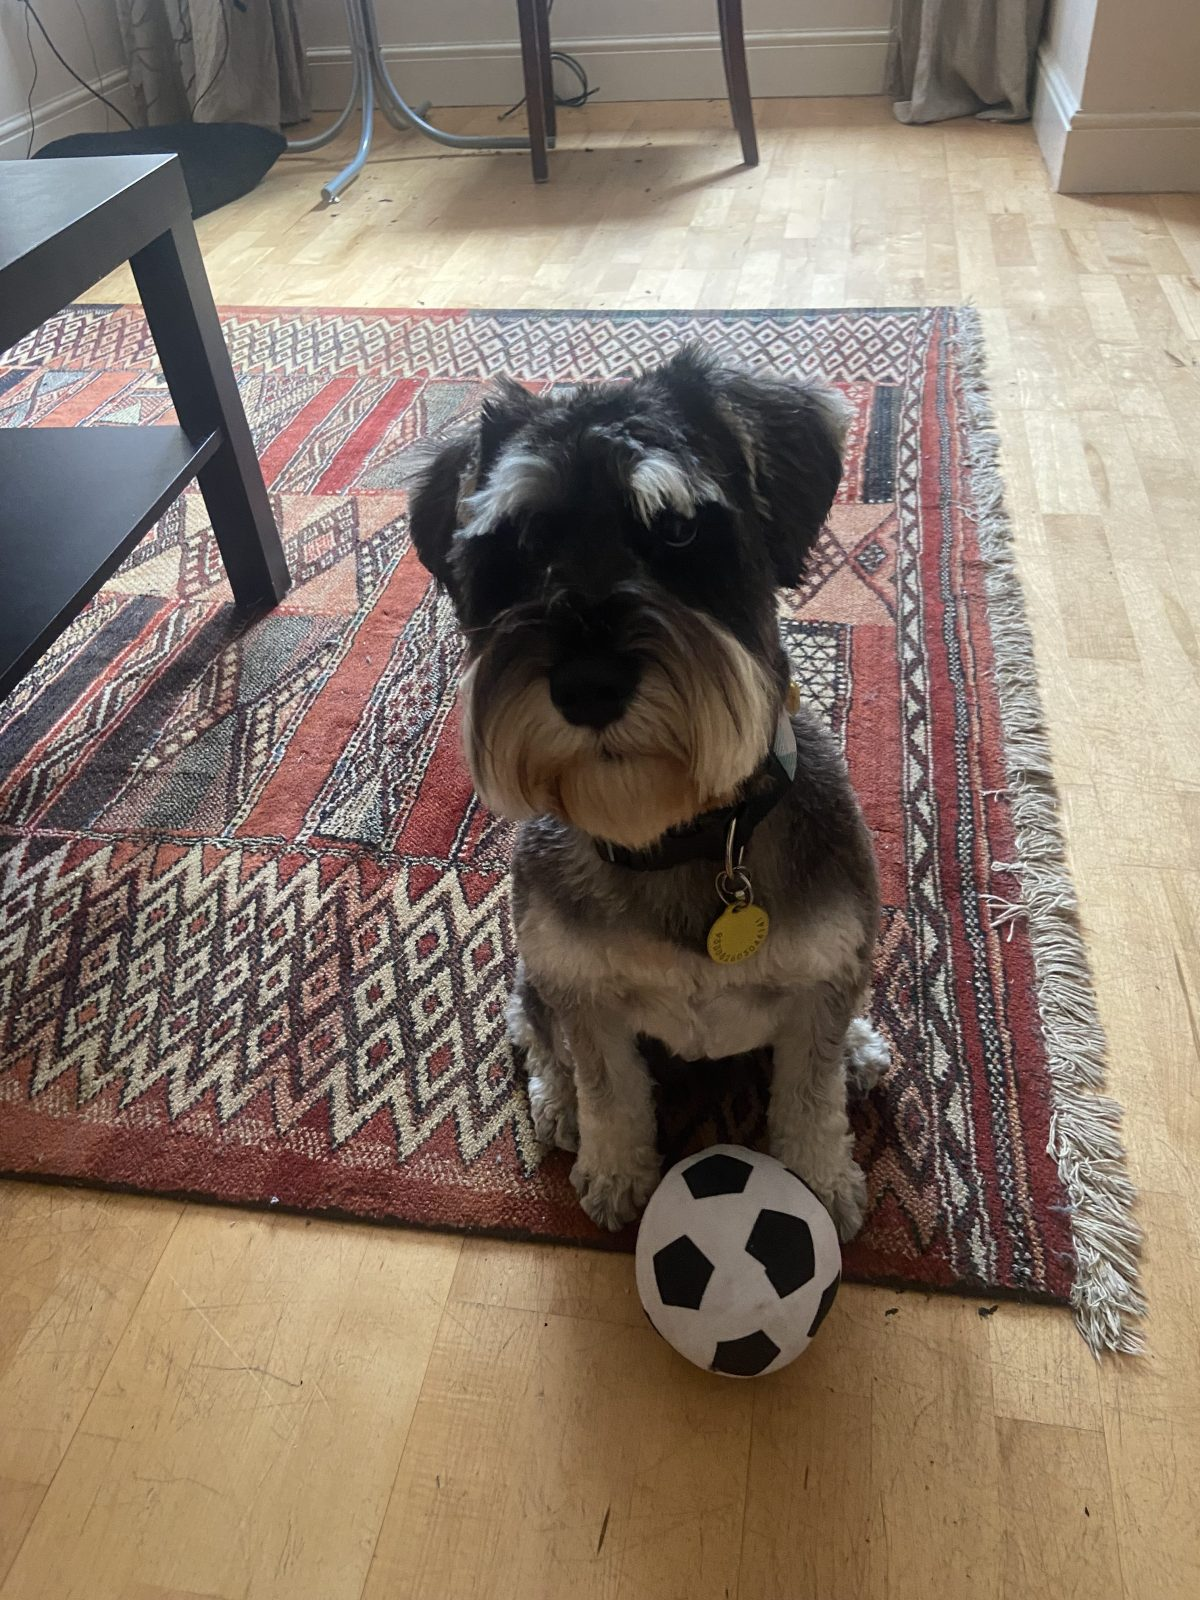 Fantasy football - Miniature schnauzer sitting on rug, with toy football between his paws.